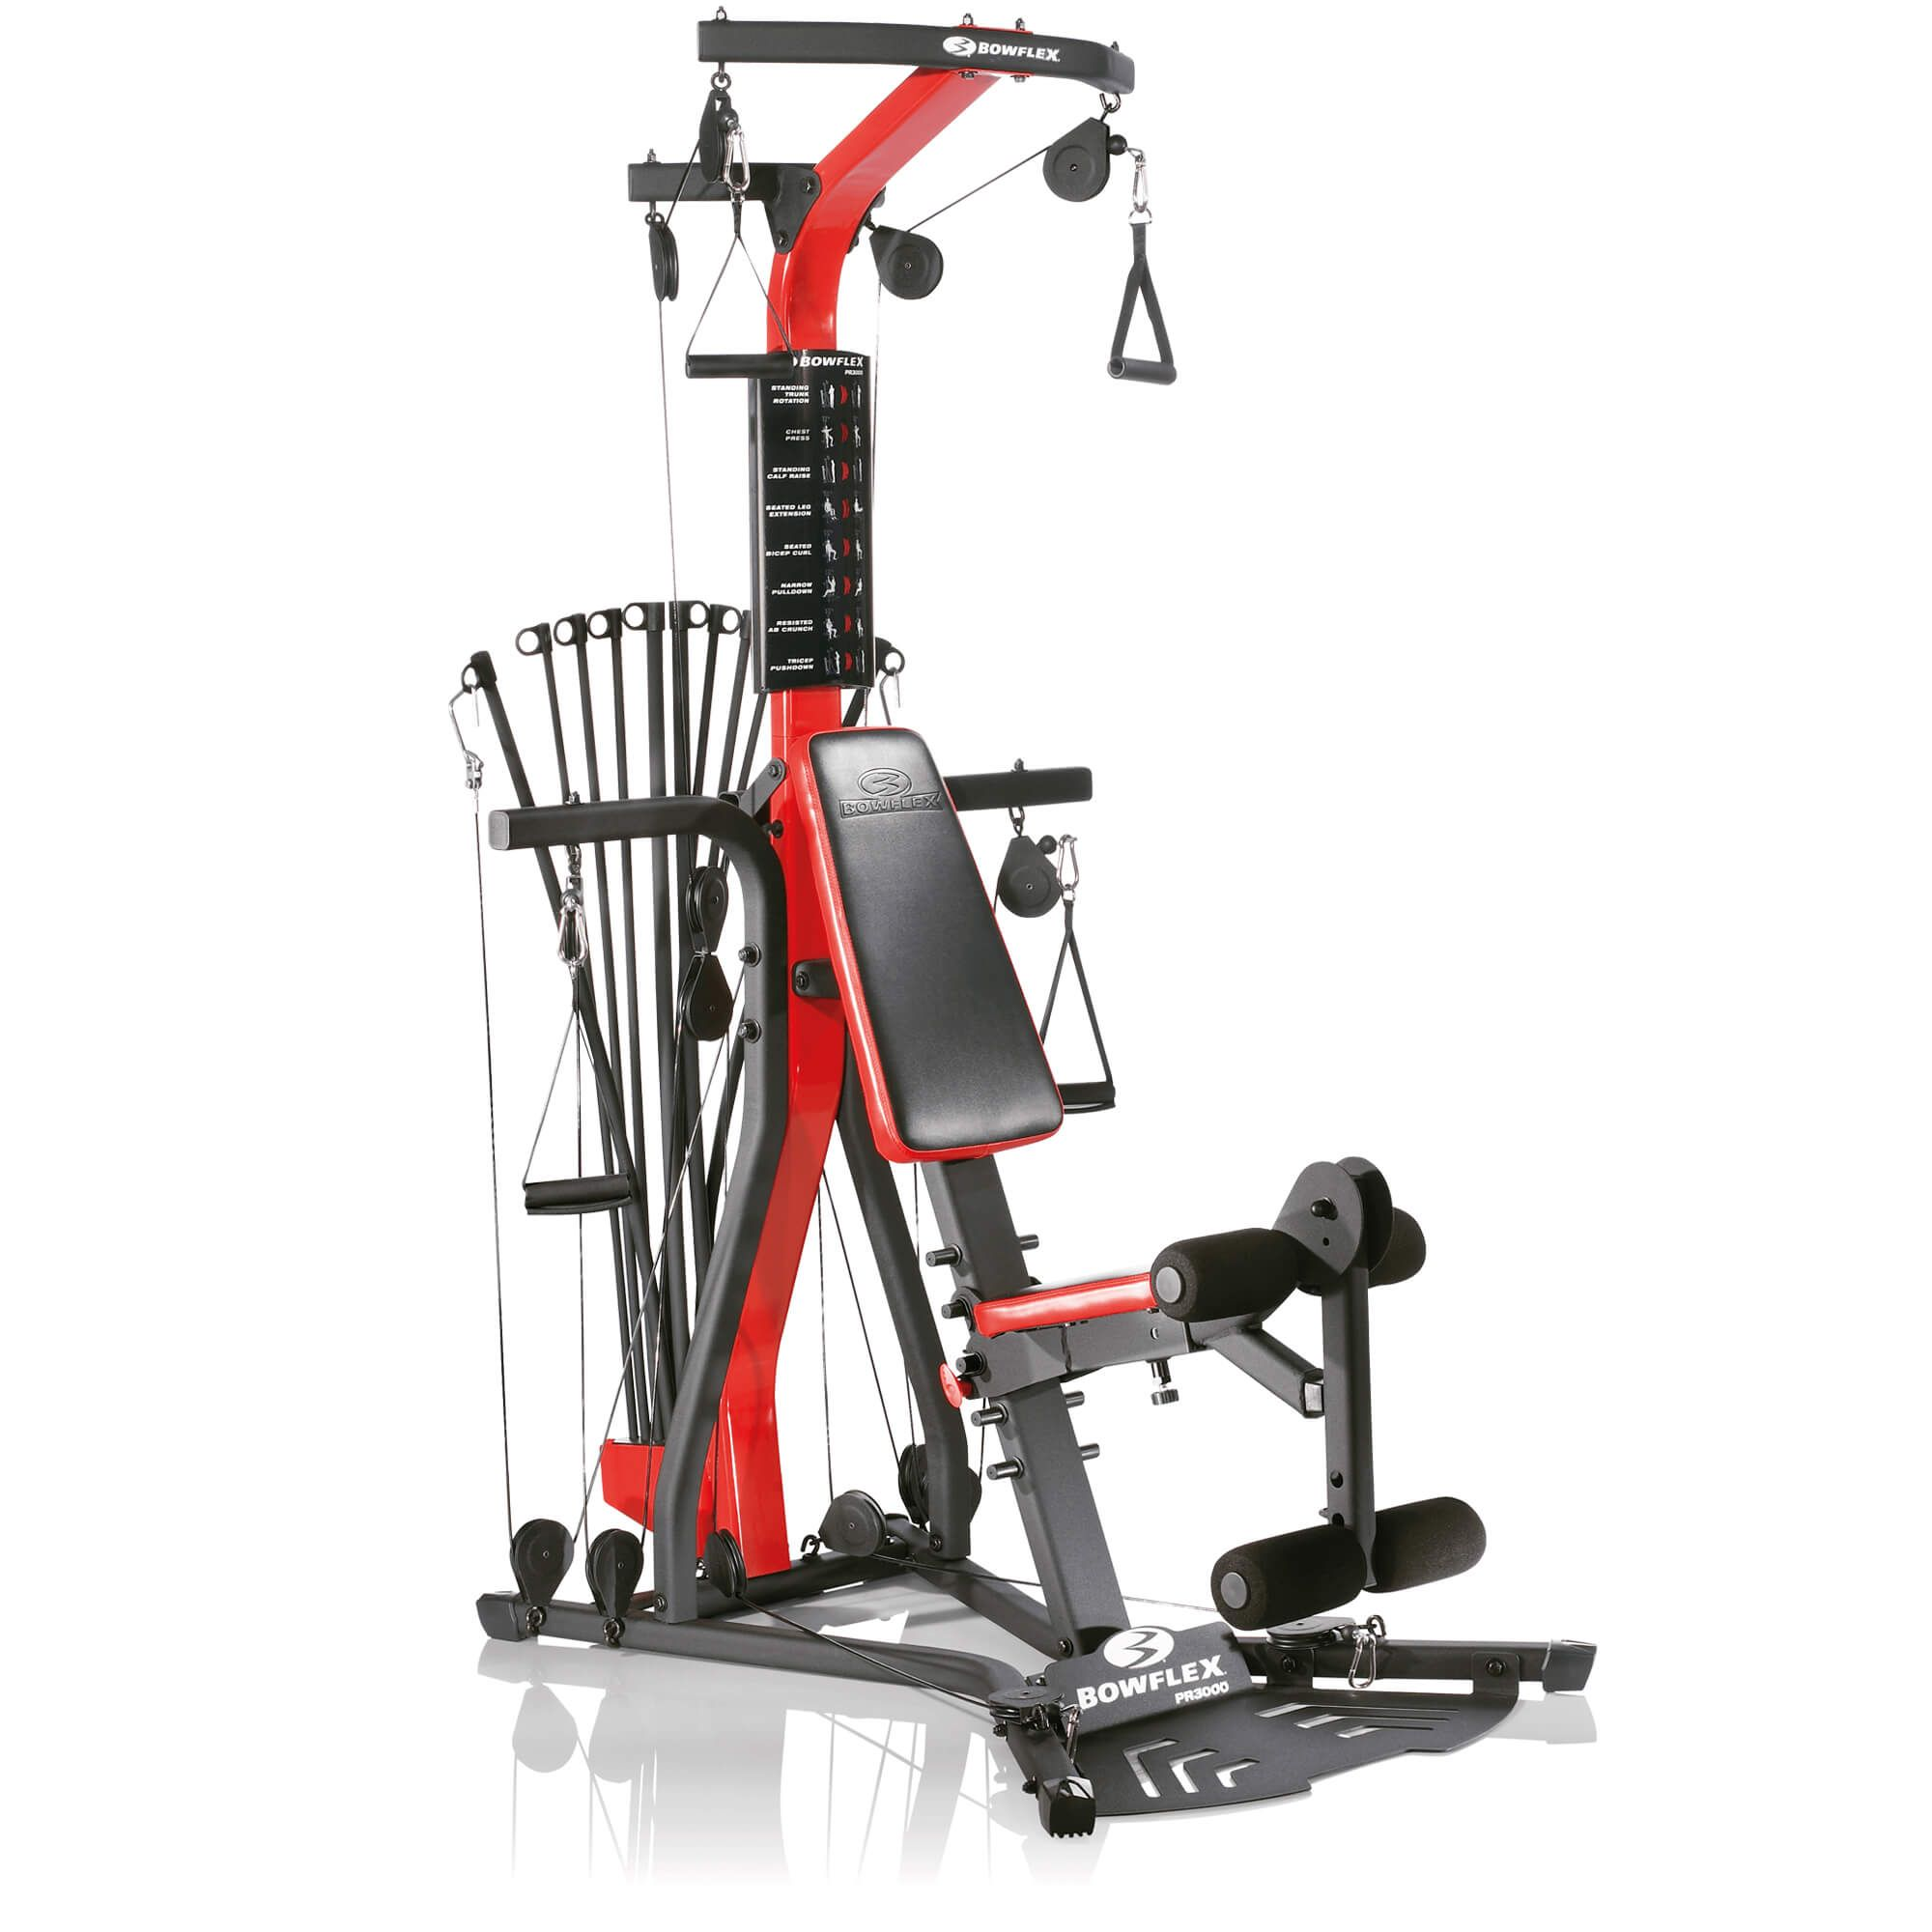 The Best Equipment For Your Home Gym